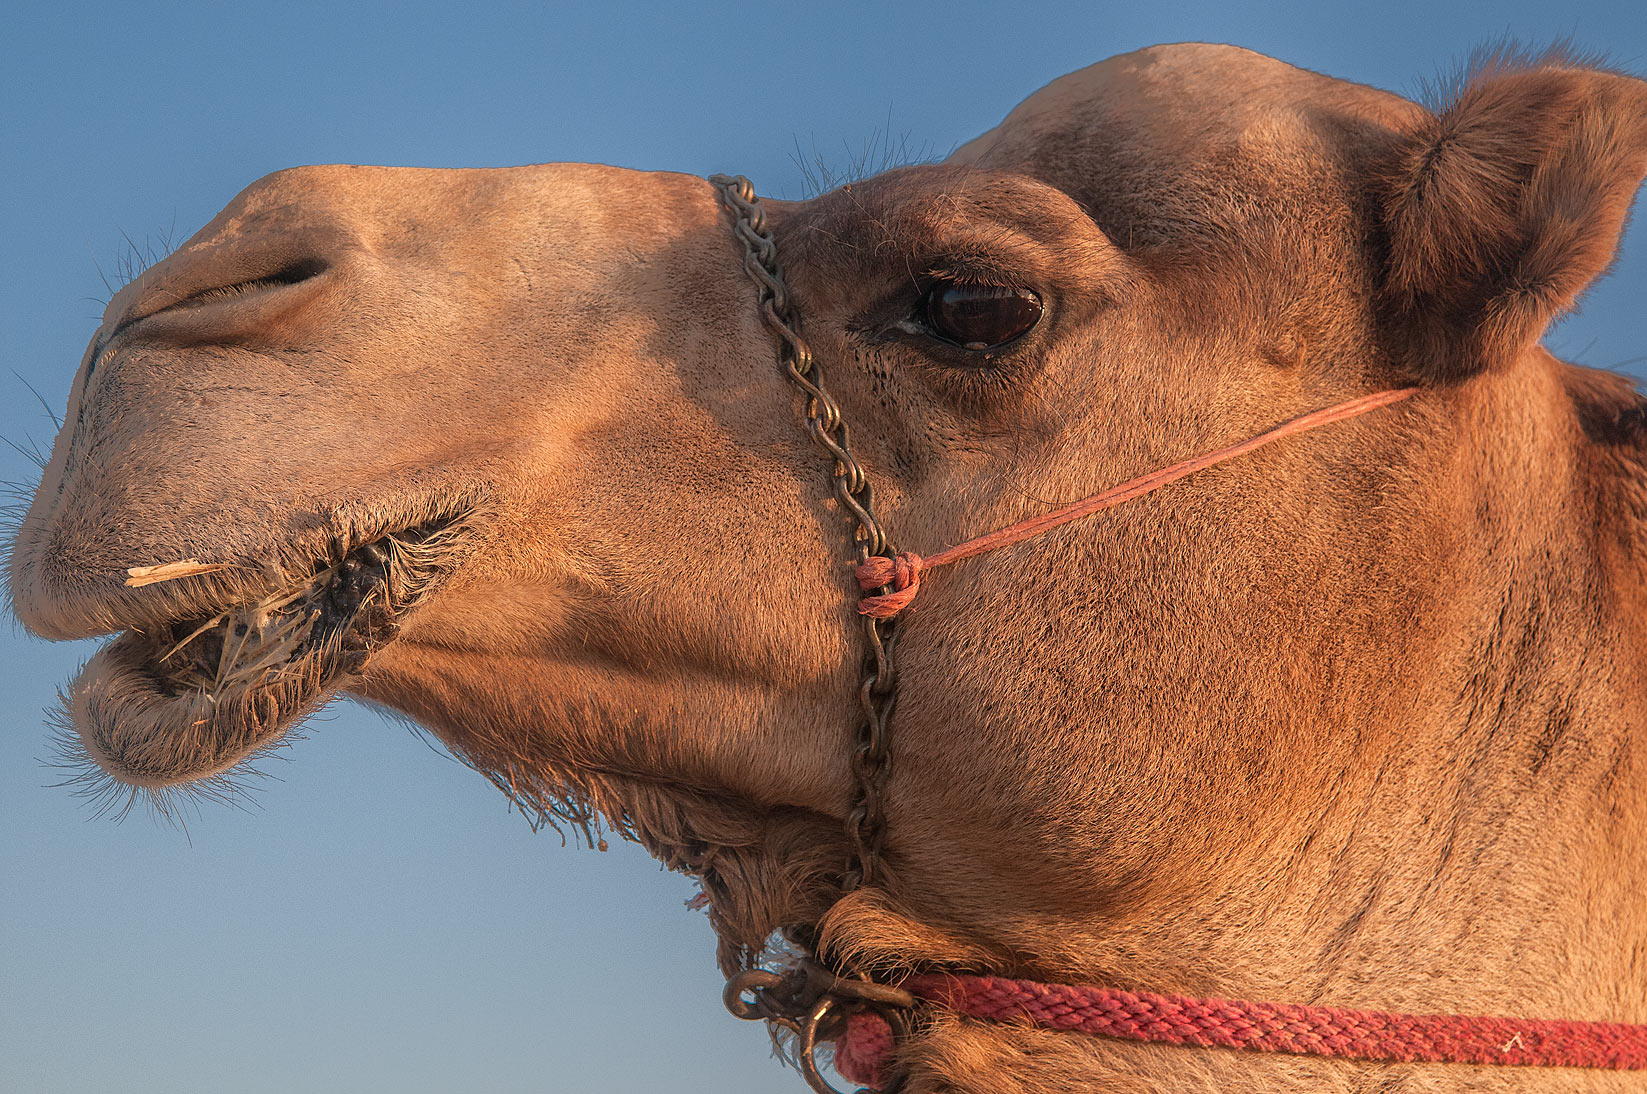 Head of a camel in Camel Market, Abu Hamour area. Doha, Qatar